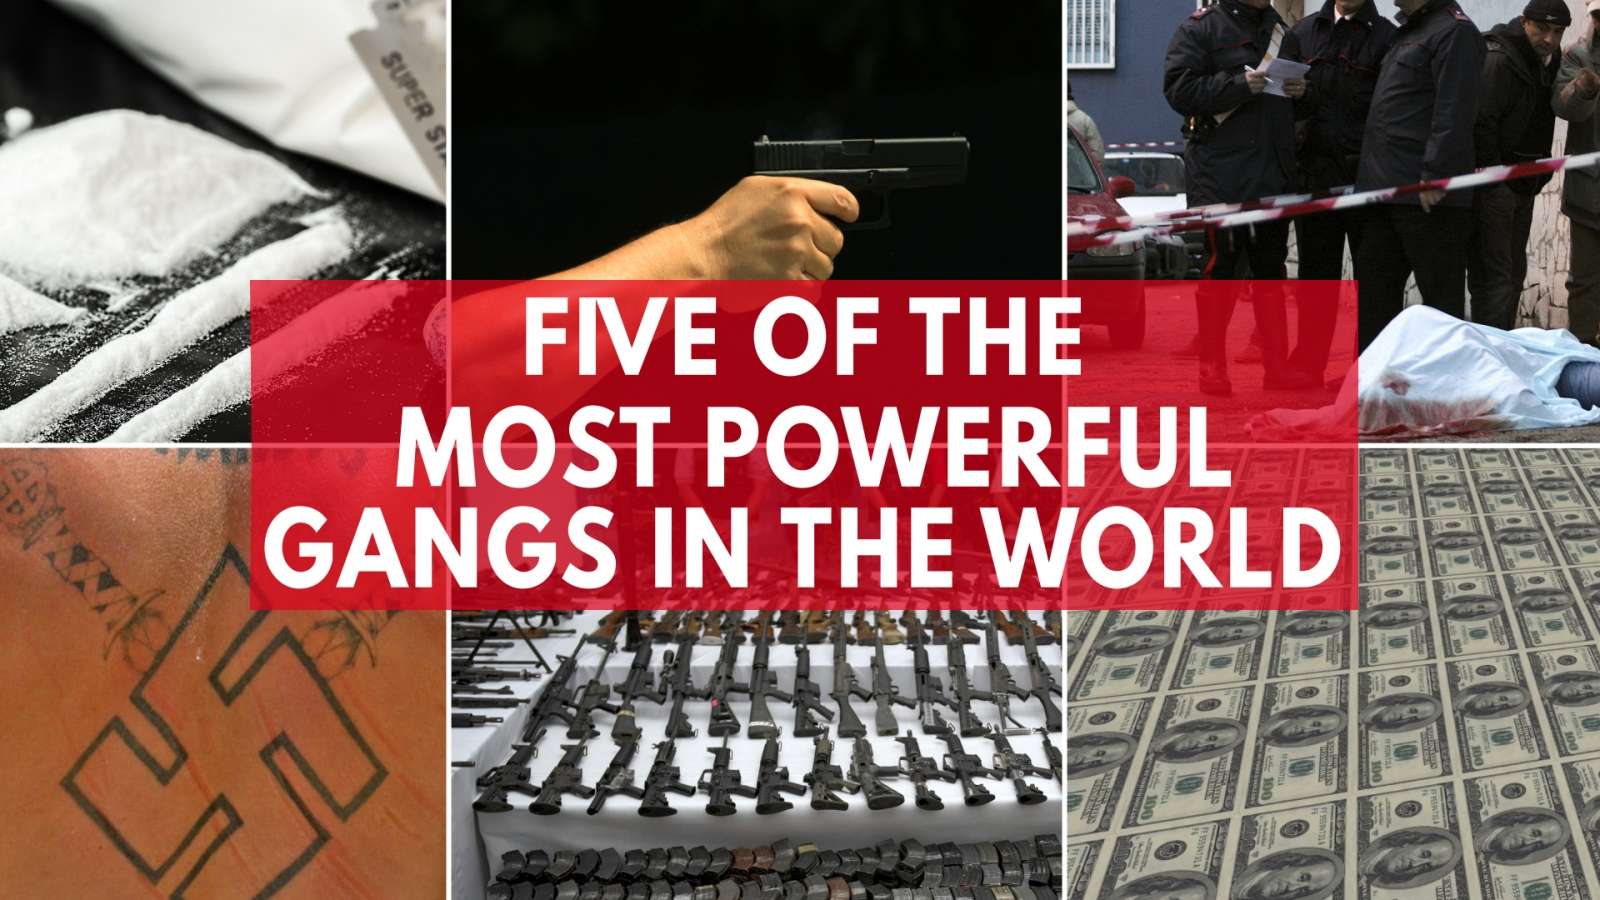 five-of-the-most-powerful-gangs-in-the-world